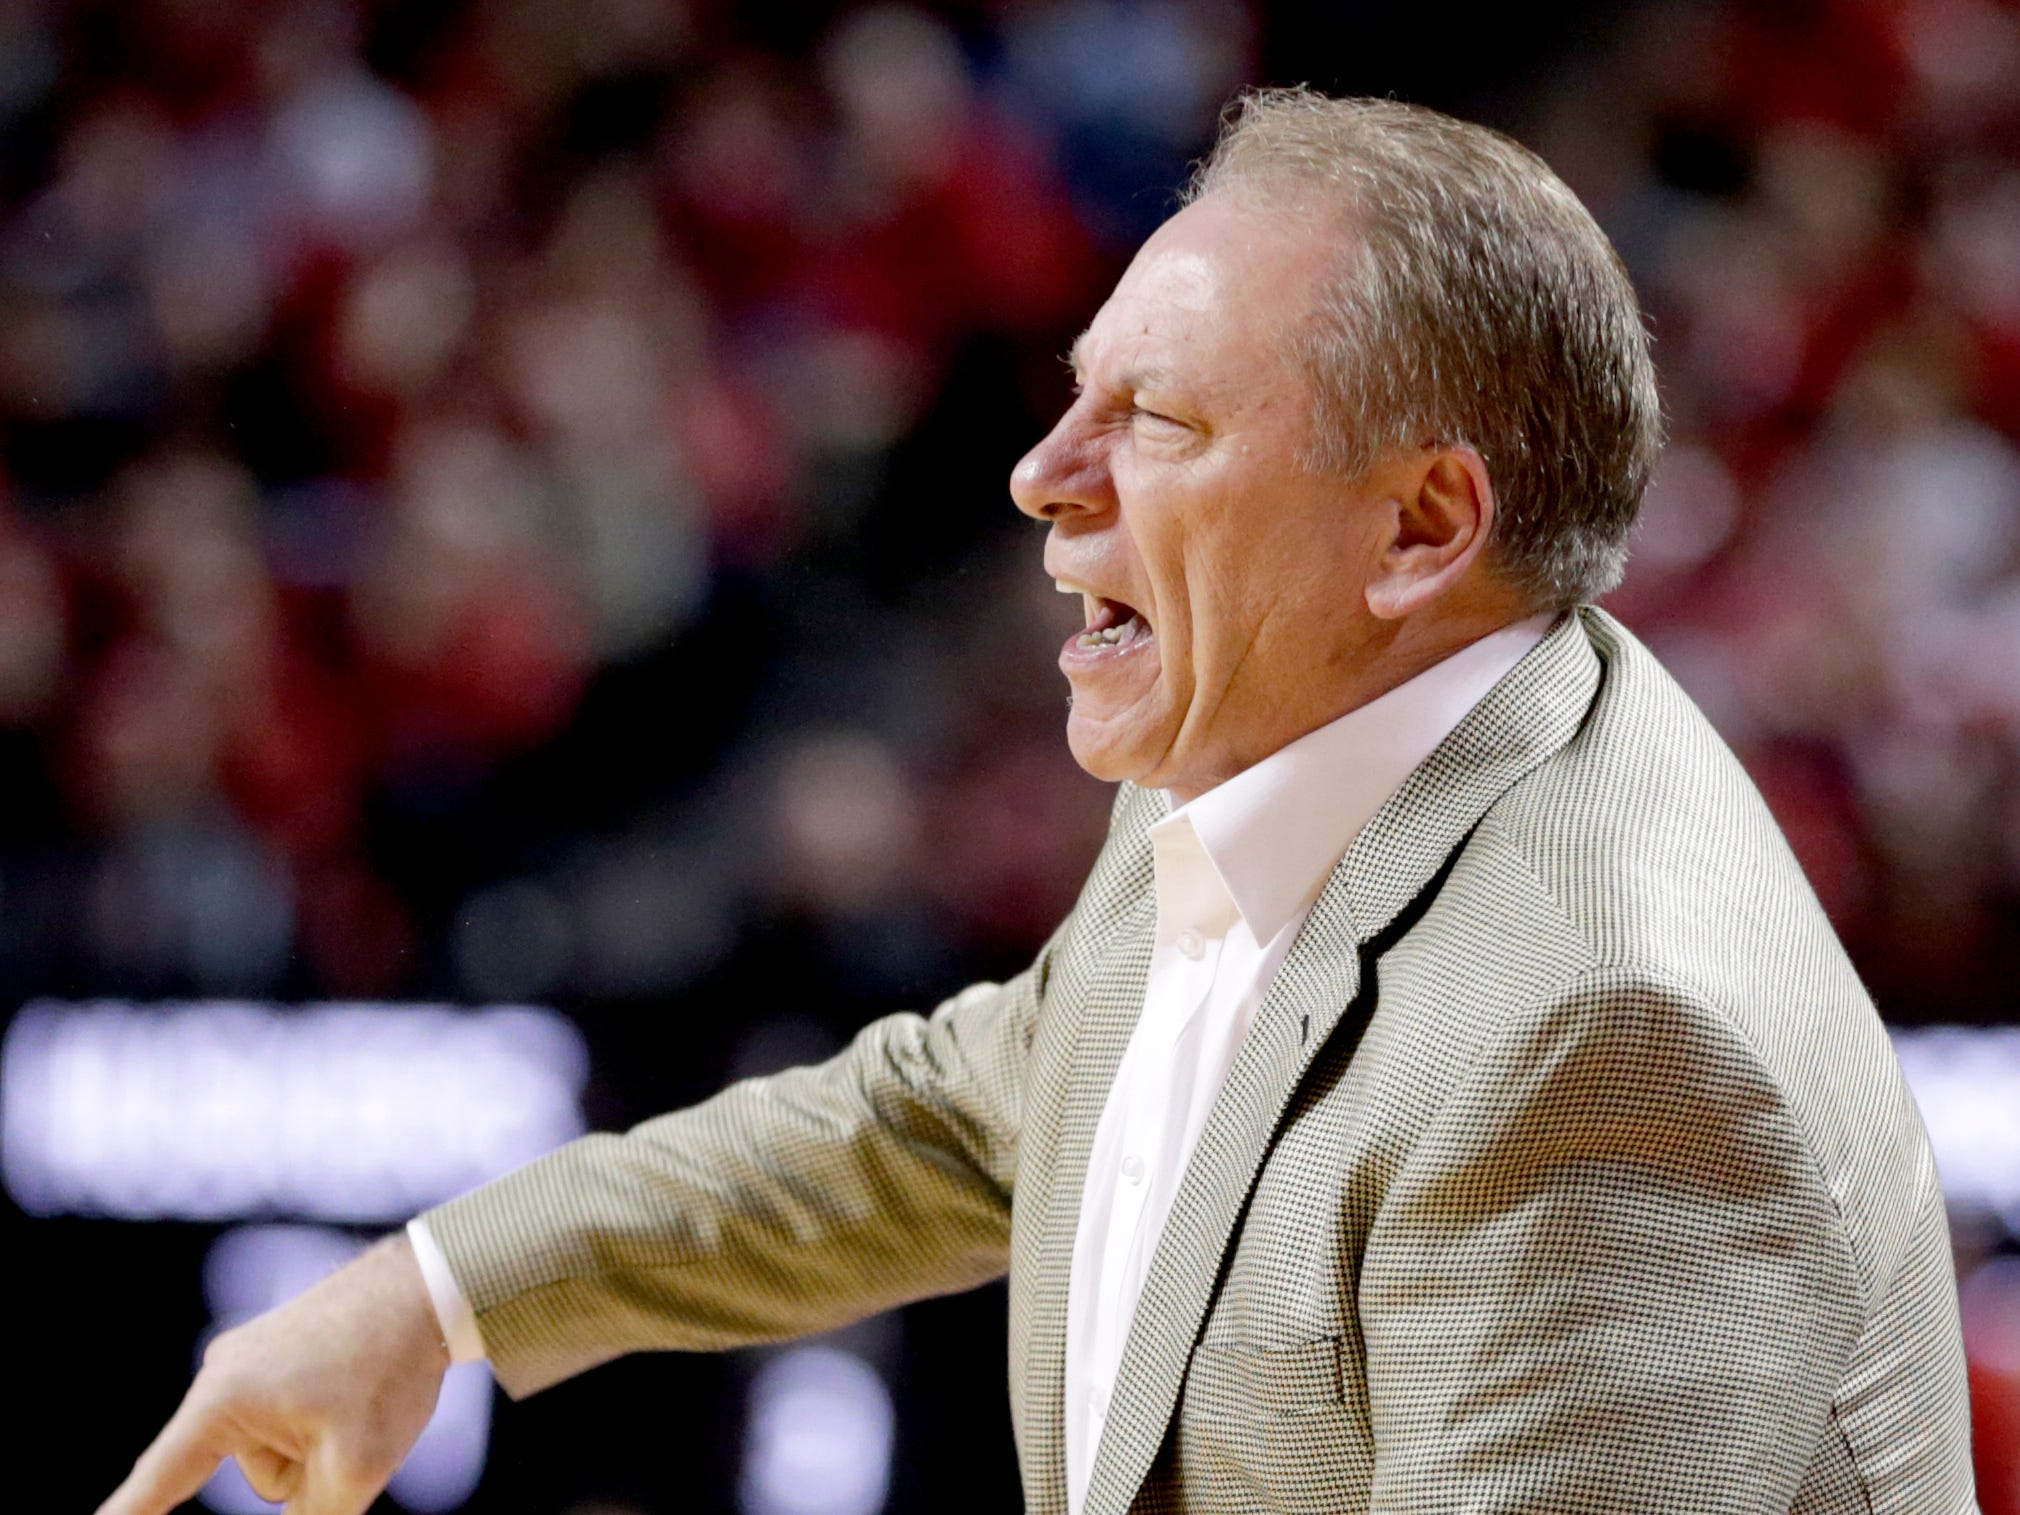 Michigan State coach Tom Izzo disputes a call during the second half of an NCAA college basketball game against Nebraska in Lincoln, Neb., Thursday, Jan. 17, 2019. Michigan State won 70-64.